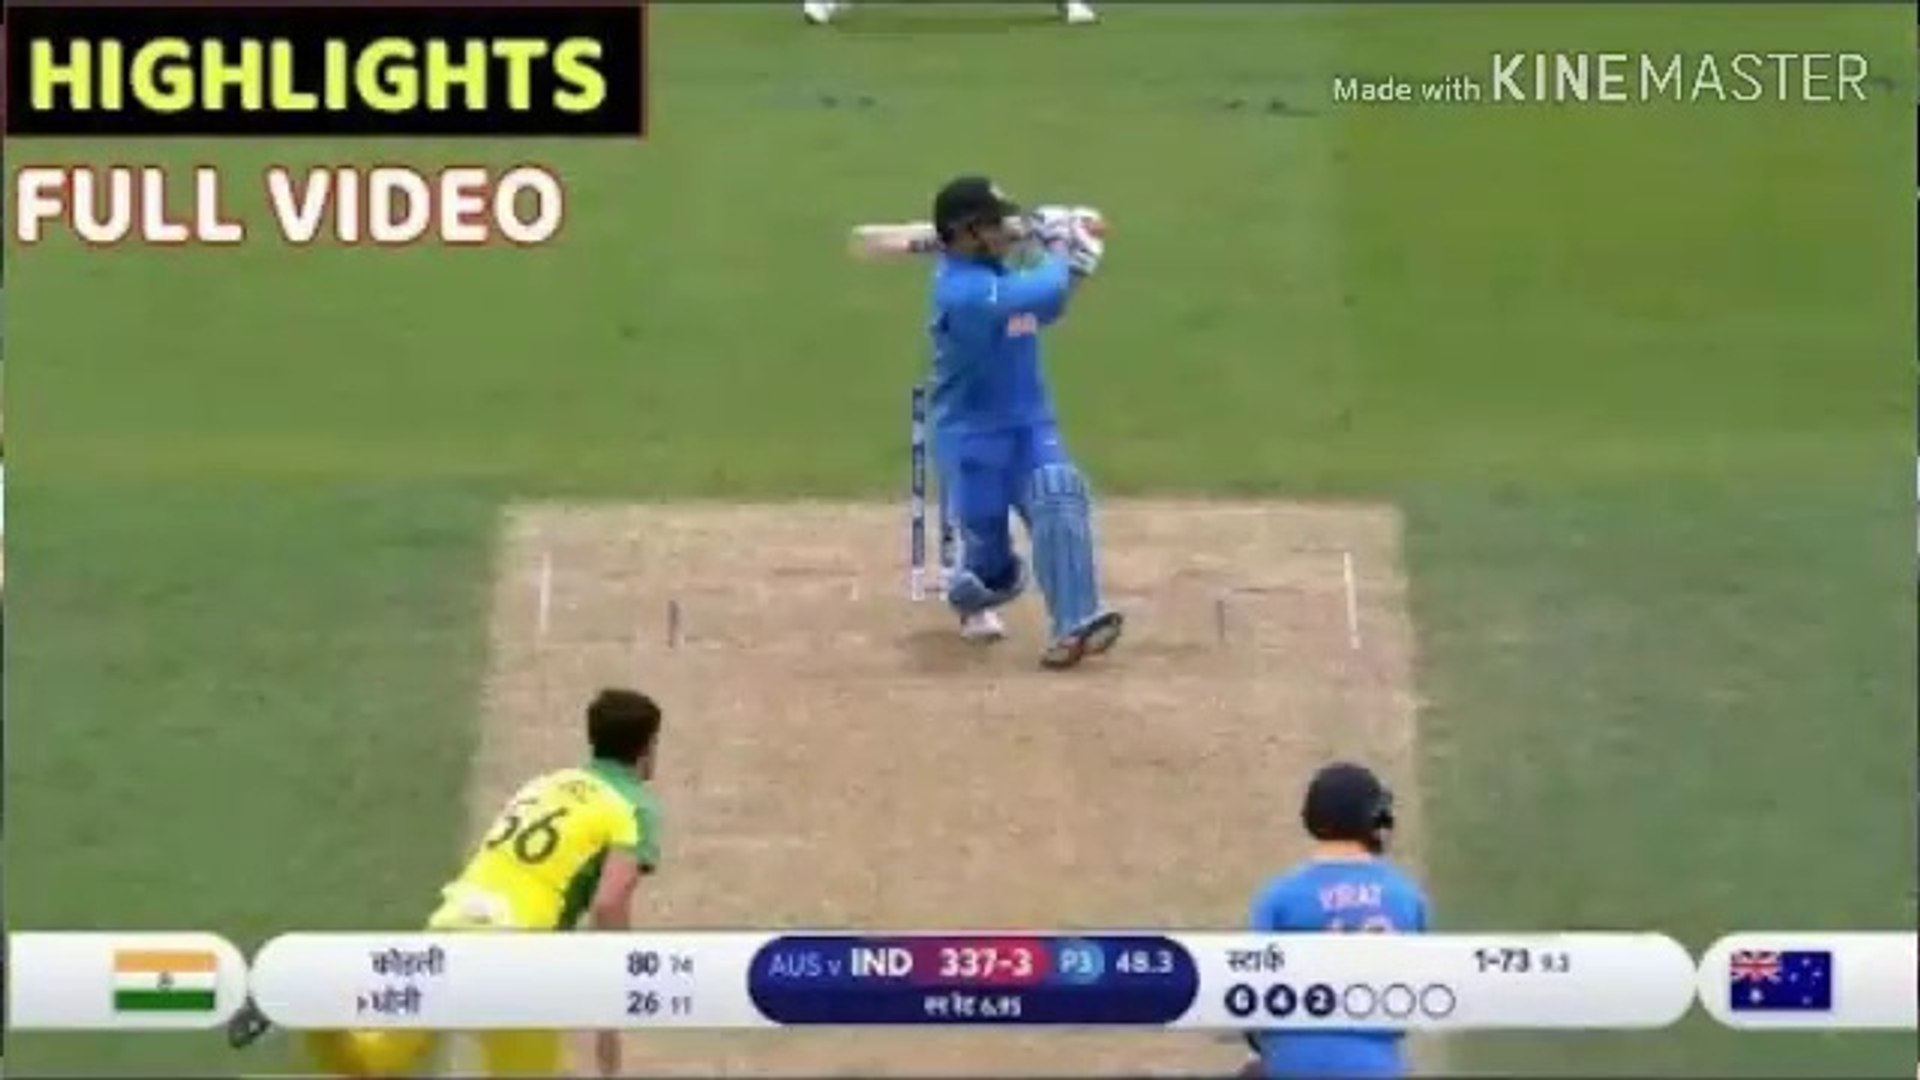 India Vs Australia World Cup 2019 Full Match Highlights Live Cricket 2019